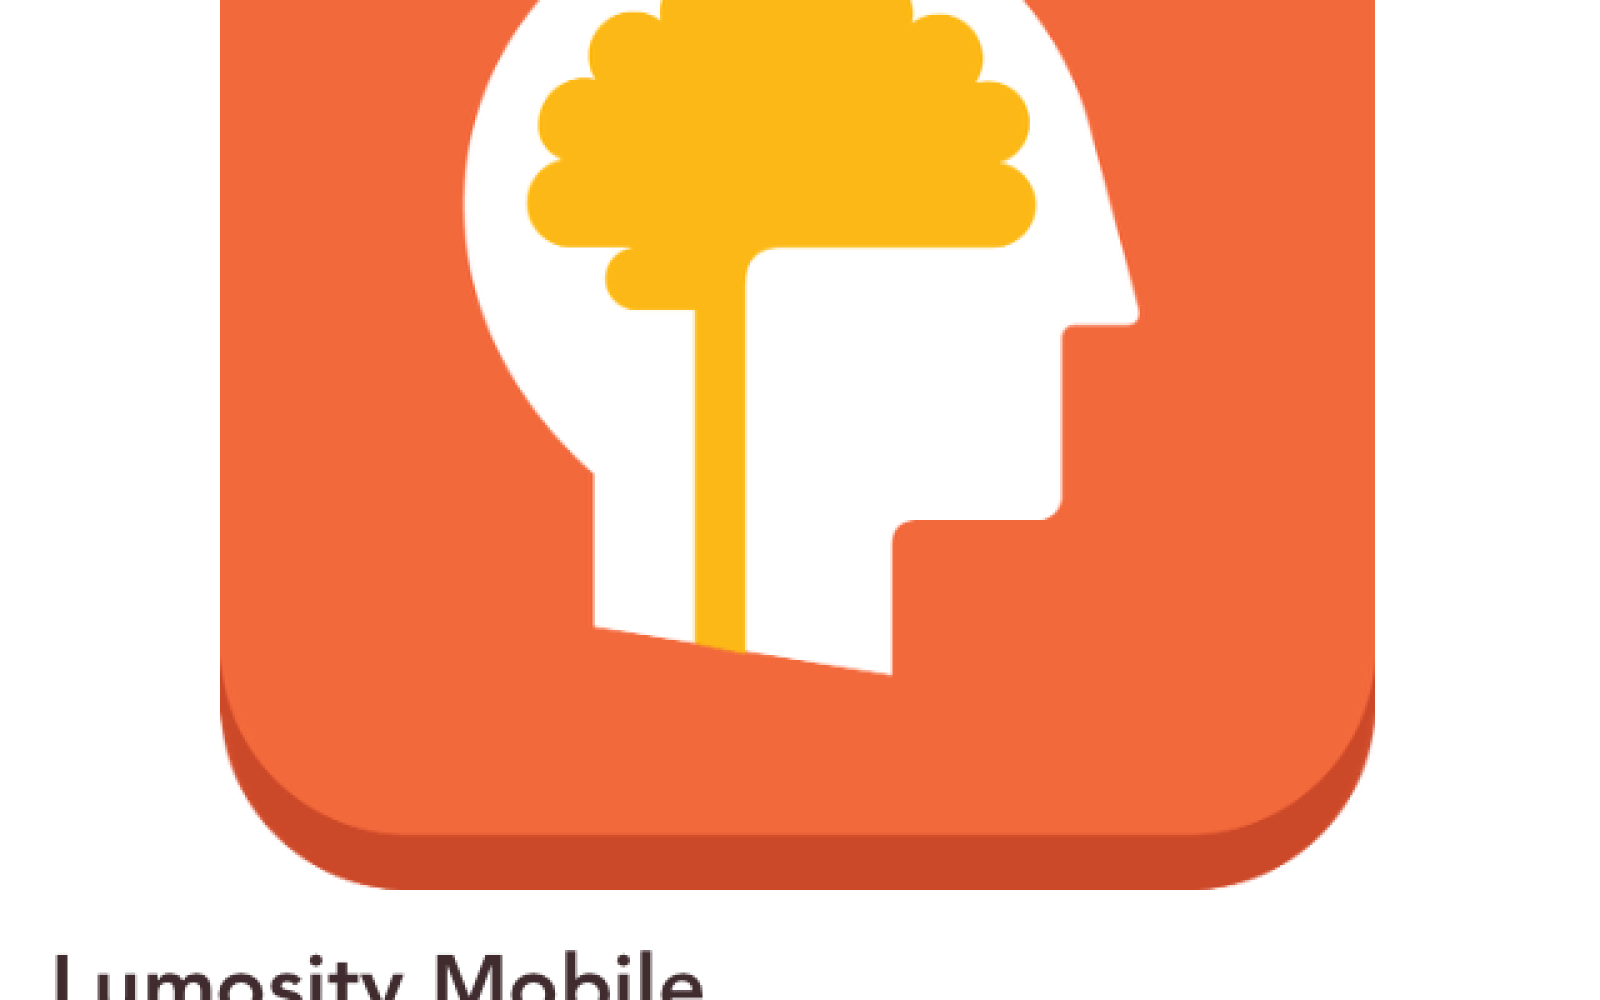 Starbucks offers one free month of Lumosity's premium service as first in-app purchase Pick of the Week